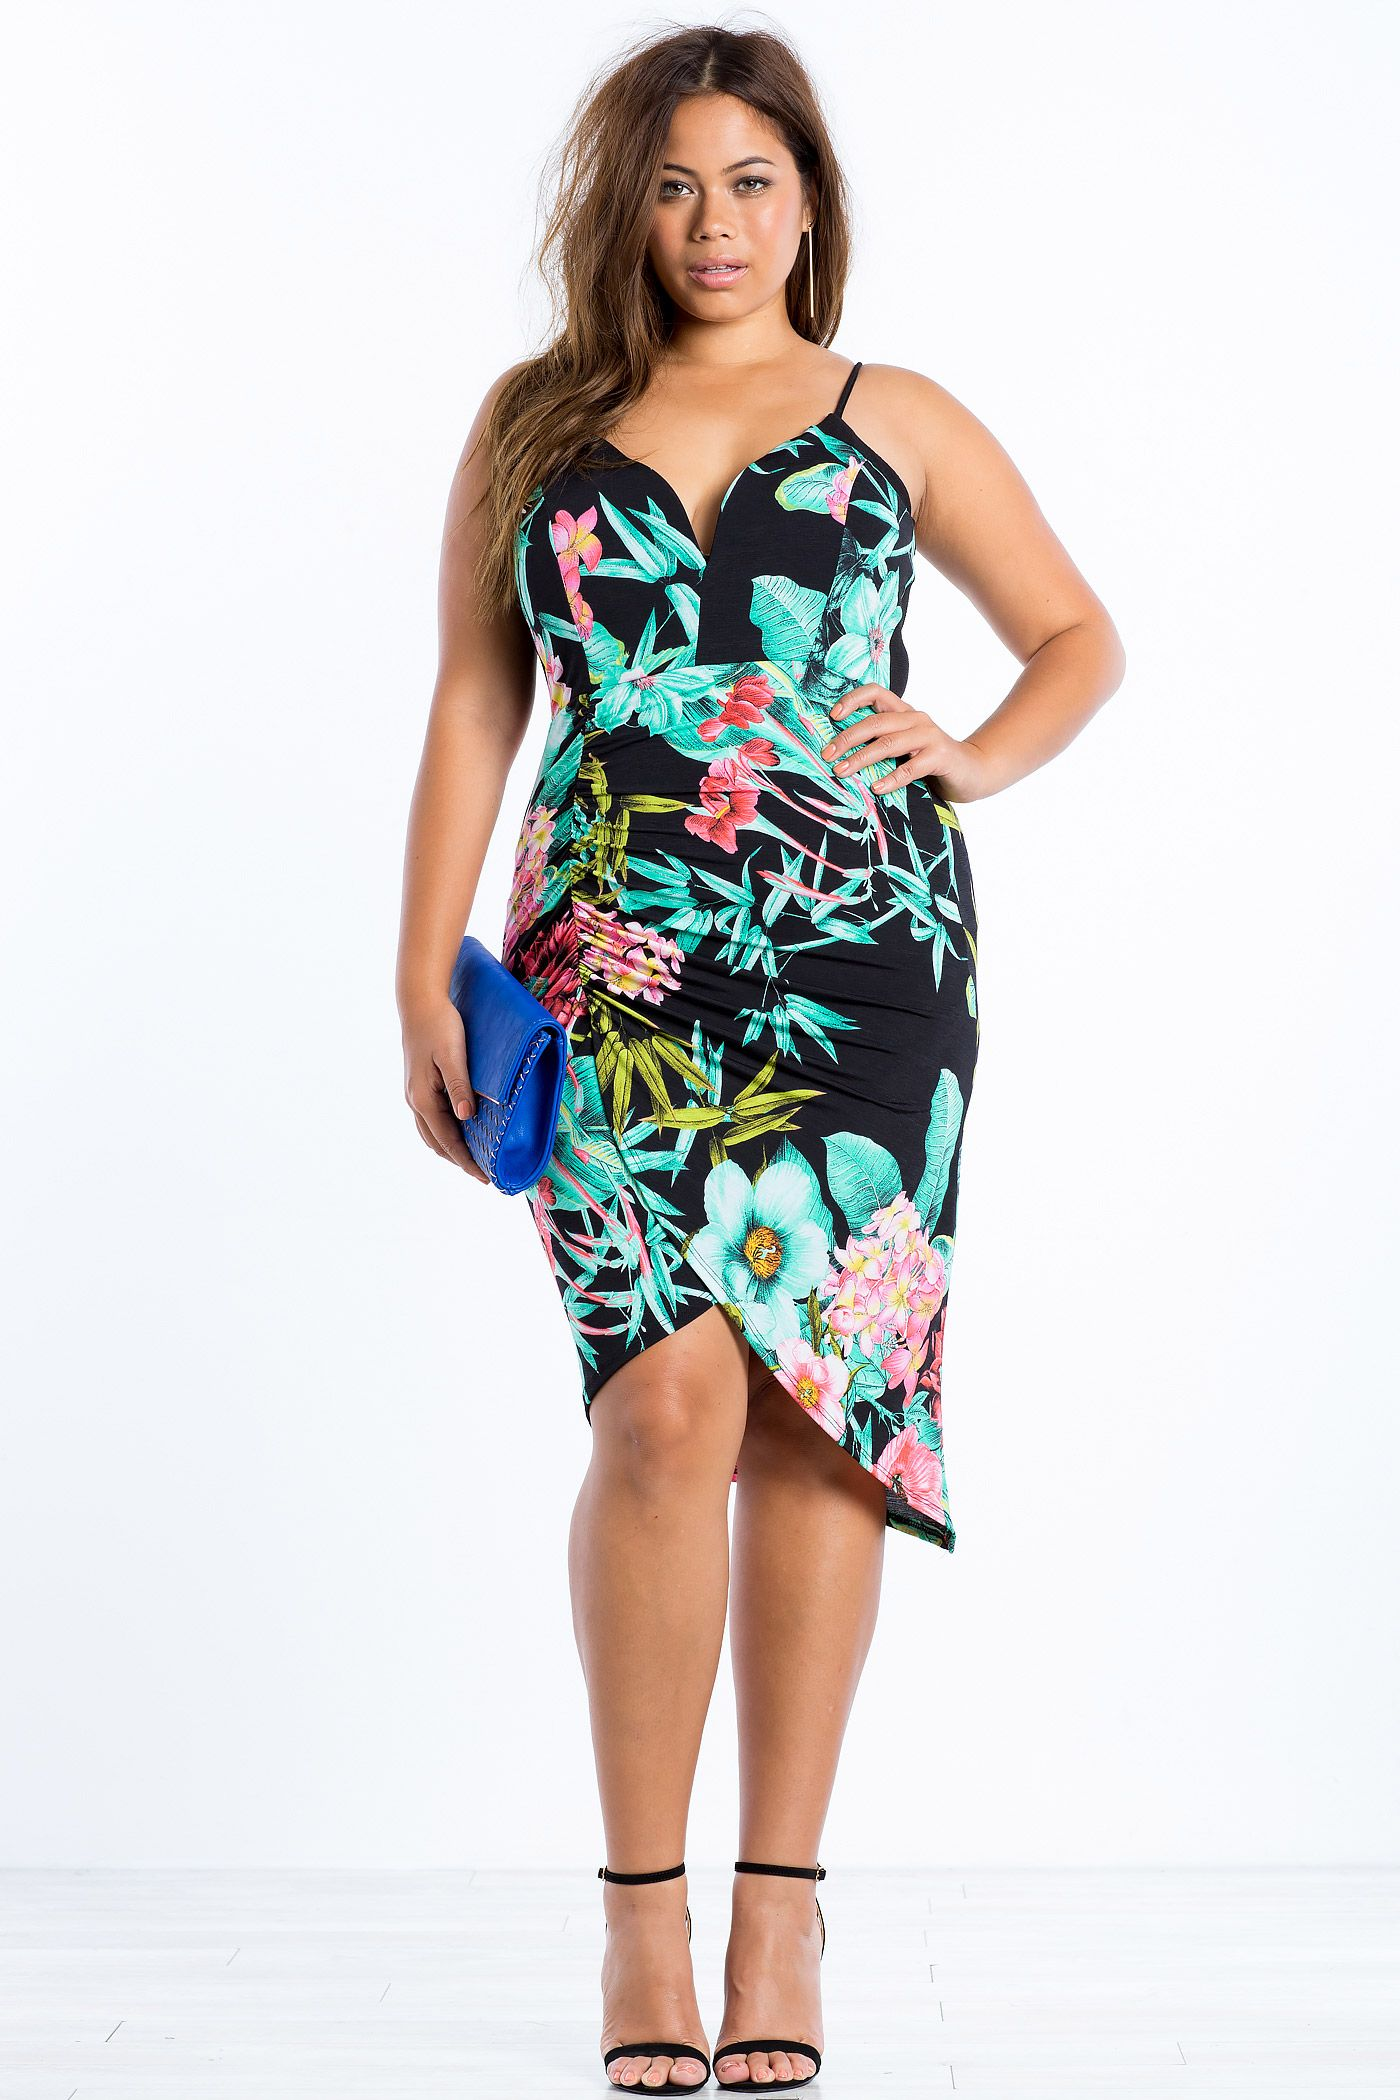 07d87d85668 Women s Plus Size Bodycon Dress